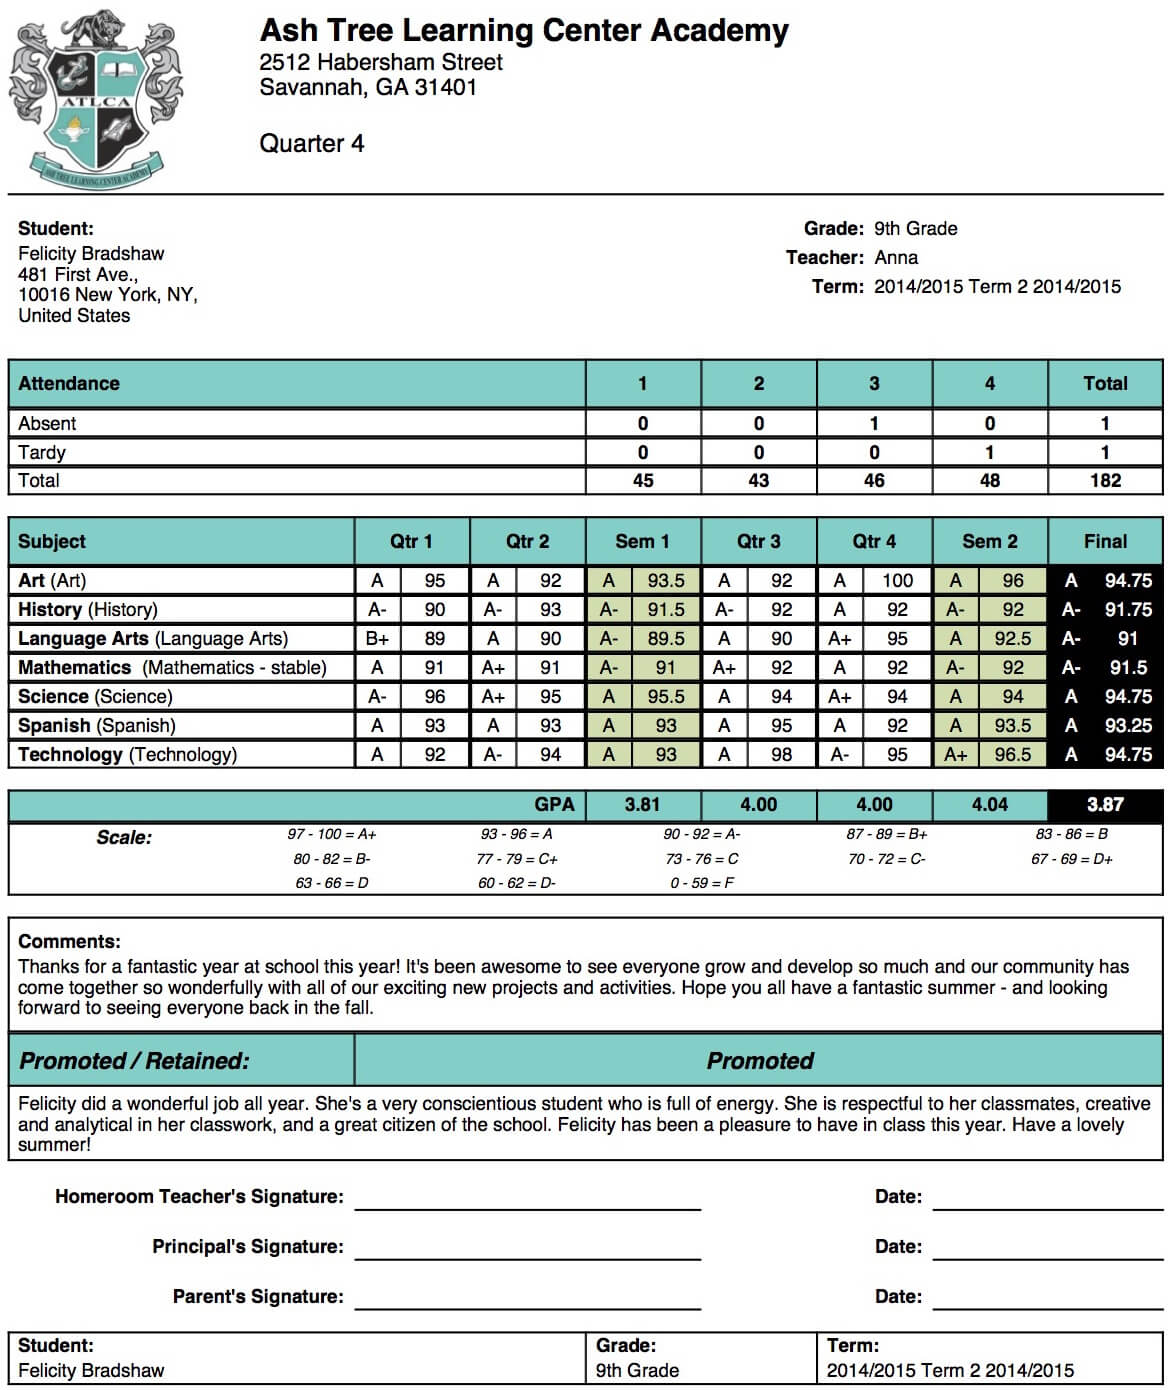 Ash Tree Learning Center Academy Report Card Template Pertaining To Middle School Report Card Template